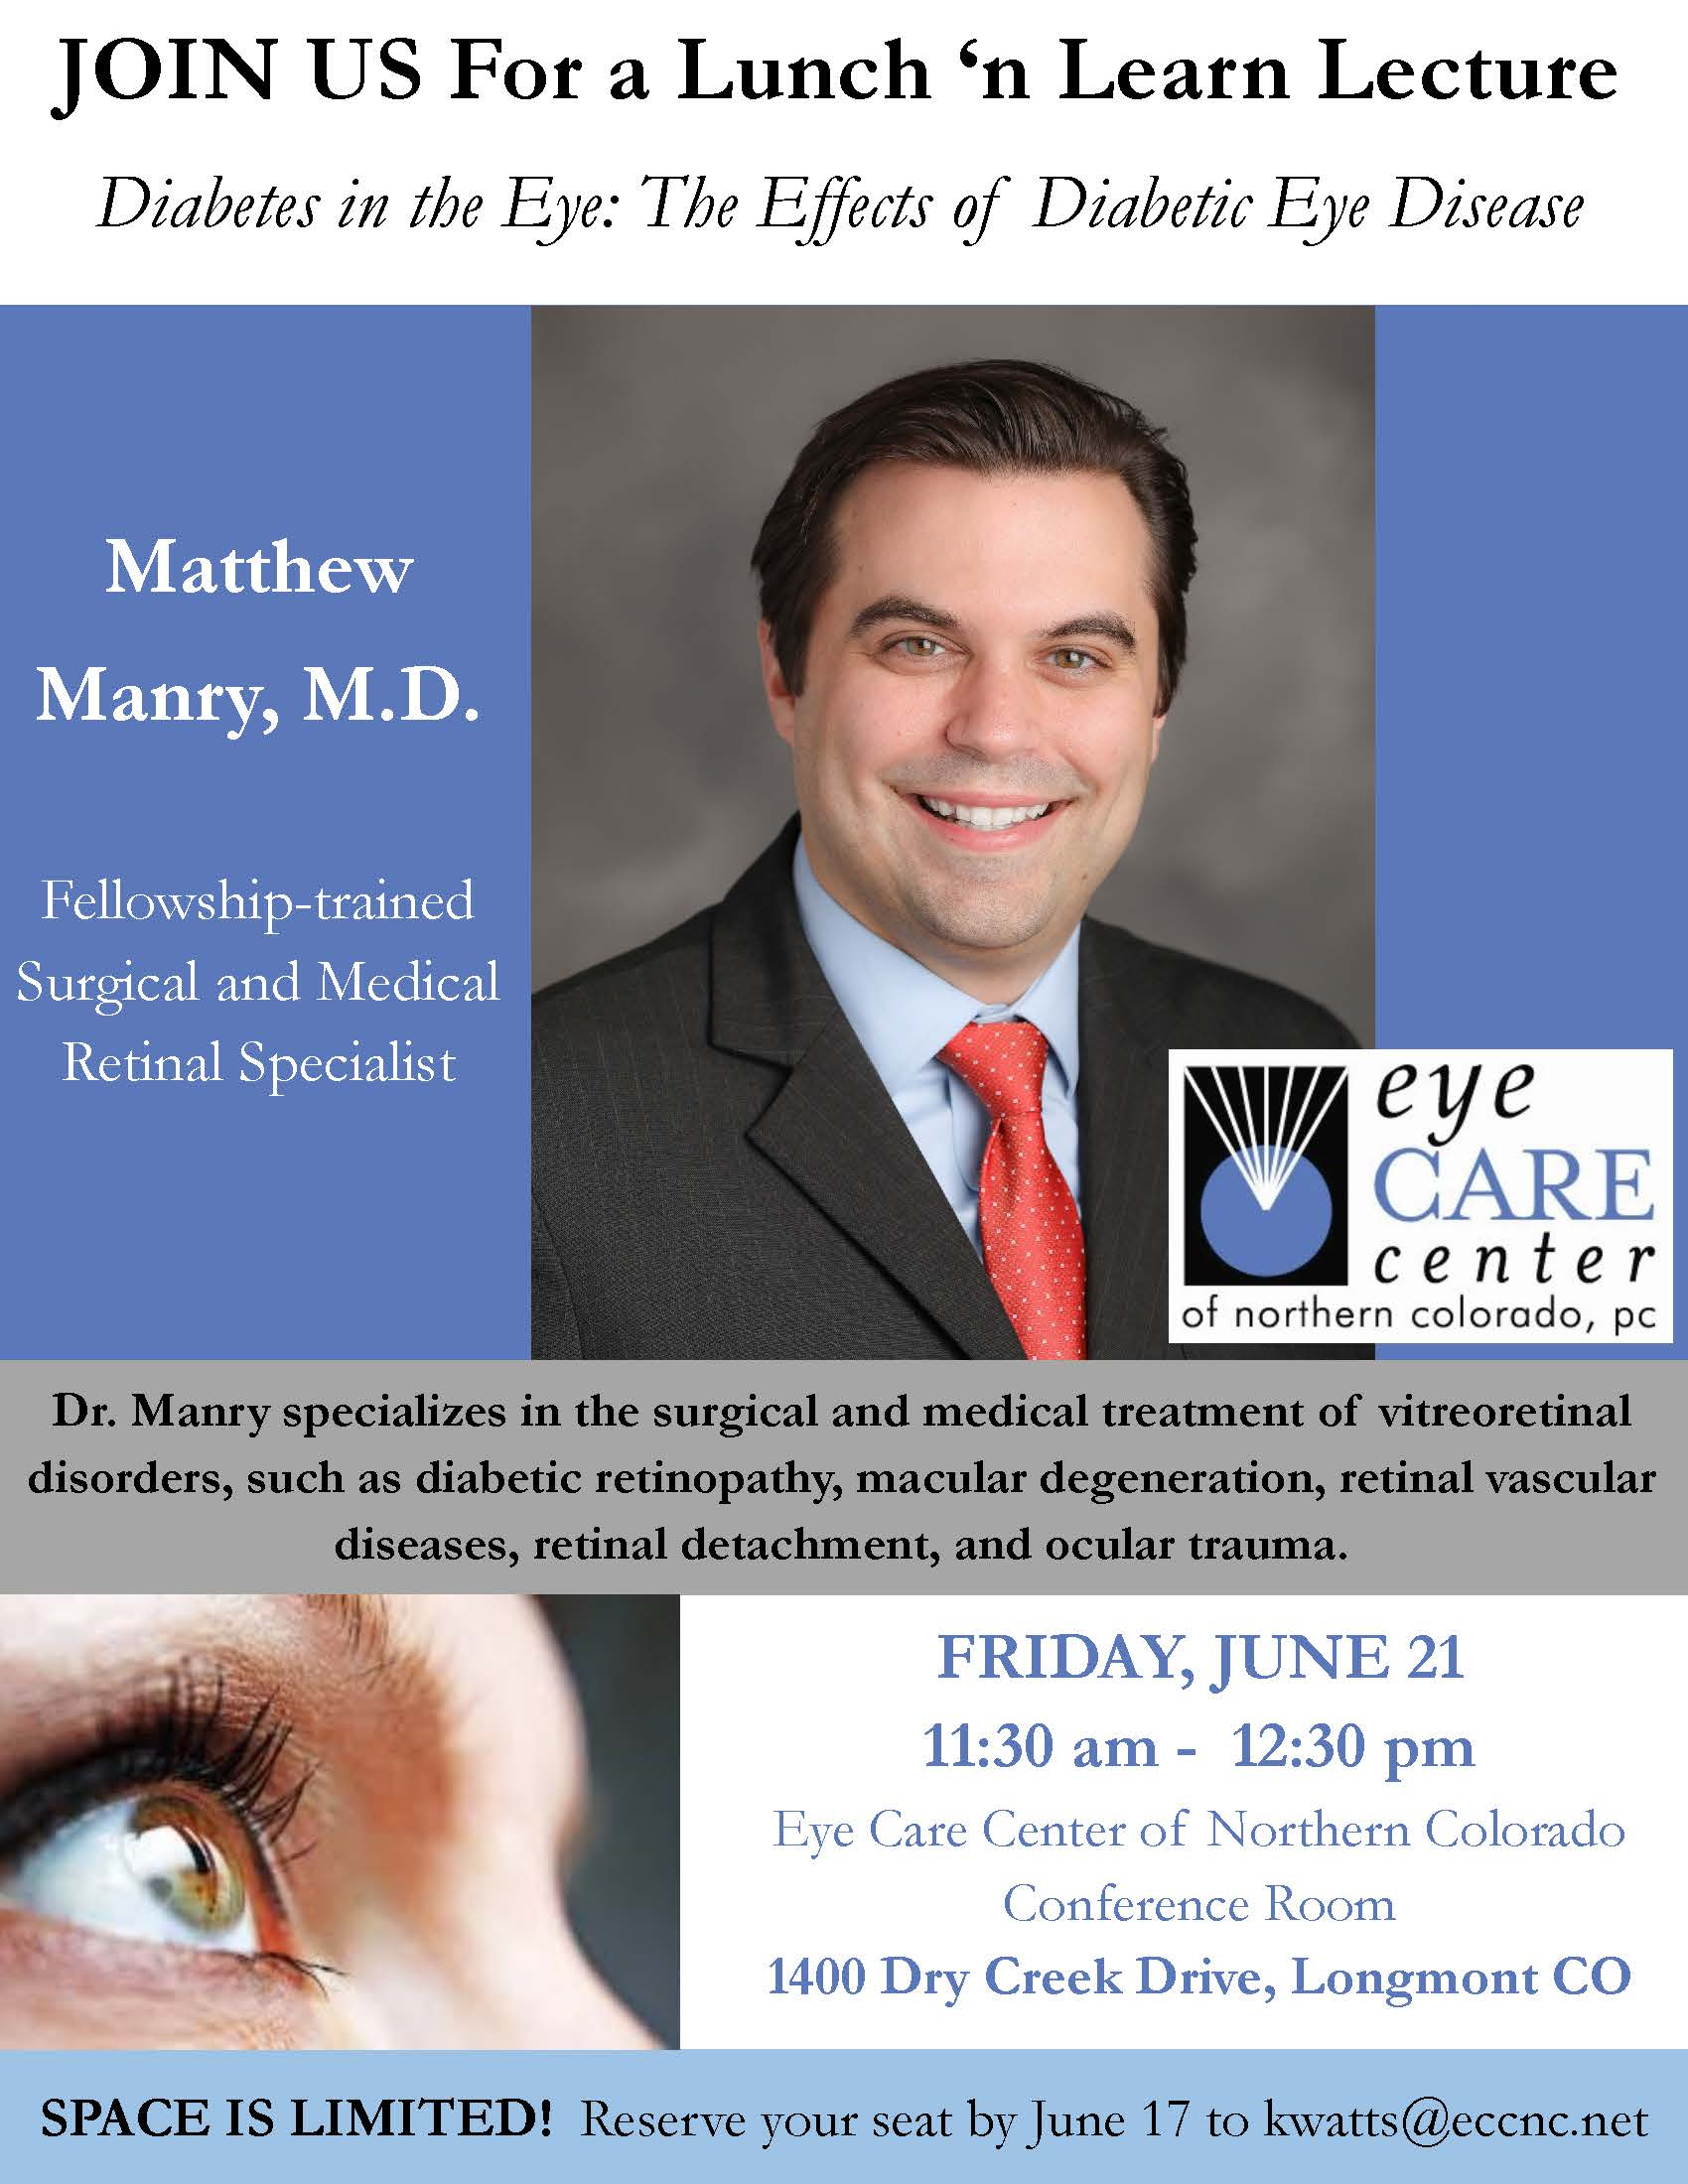 Boulder Eye Care & Surgery Center Doctors June 2019 Diabetes in the Eye - Lunch 'n Learn